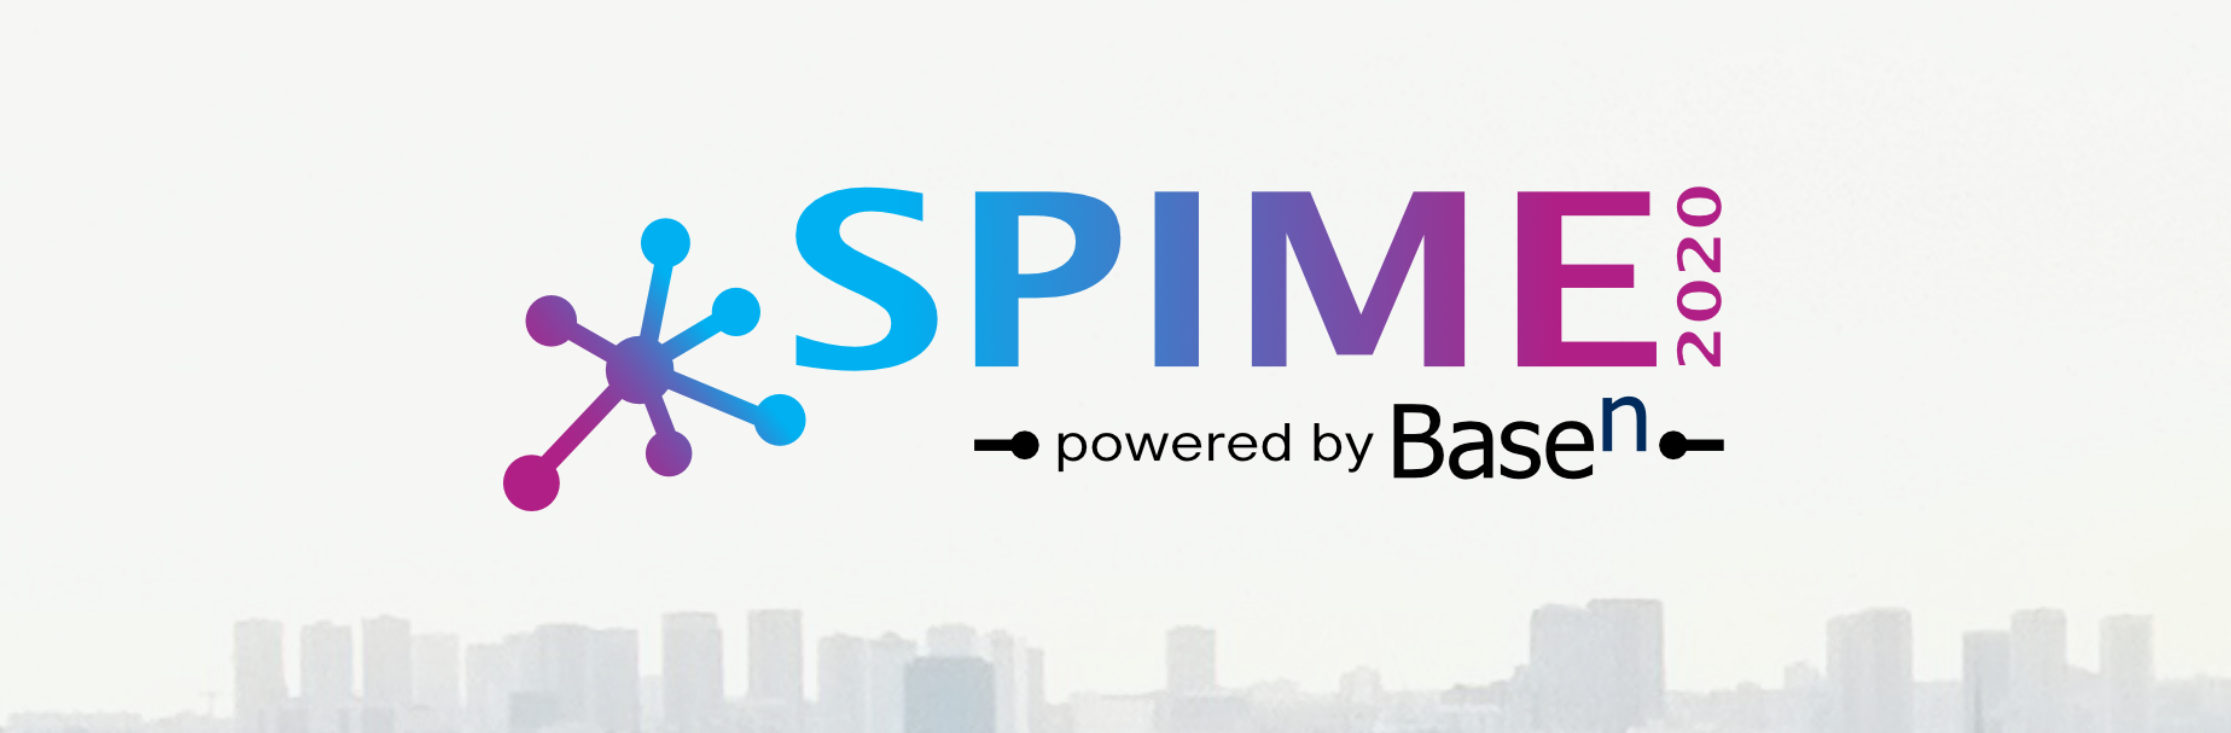 spime2020coverpic